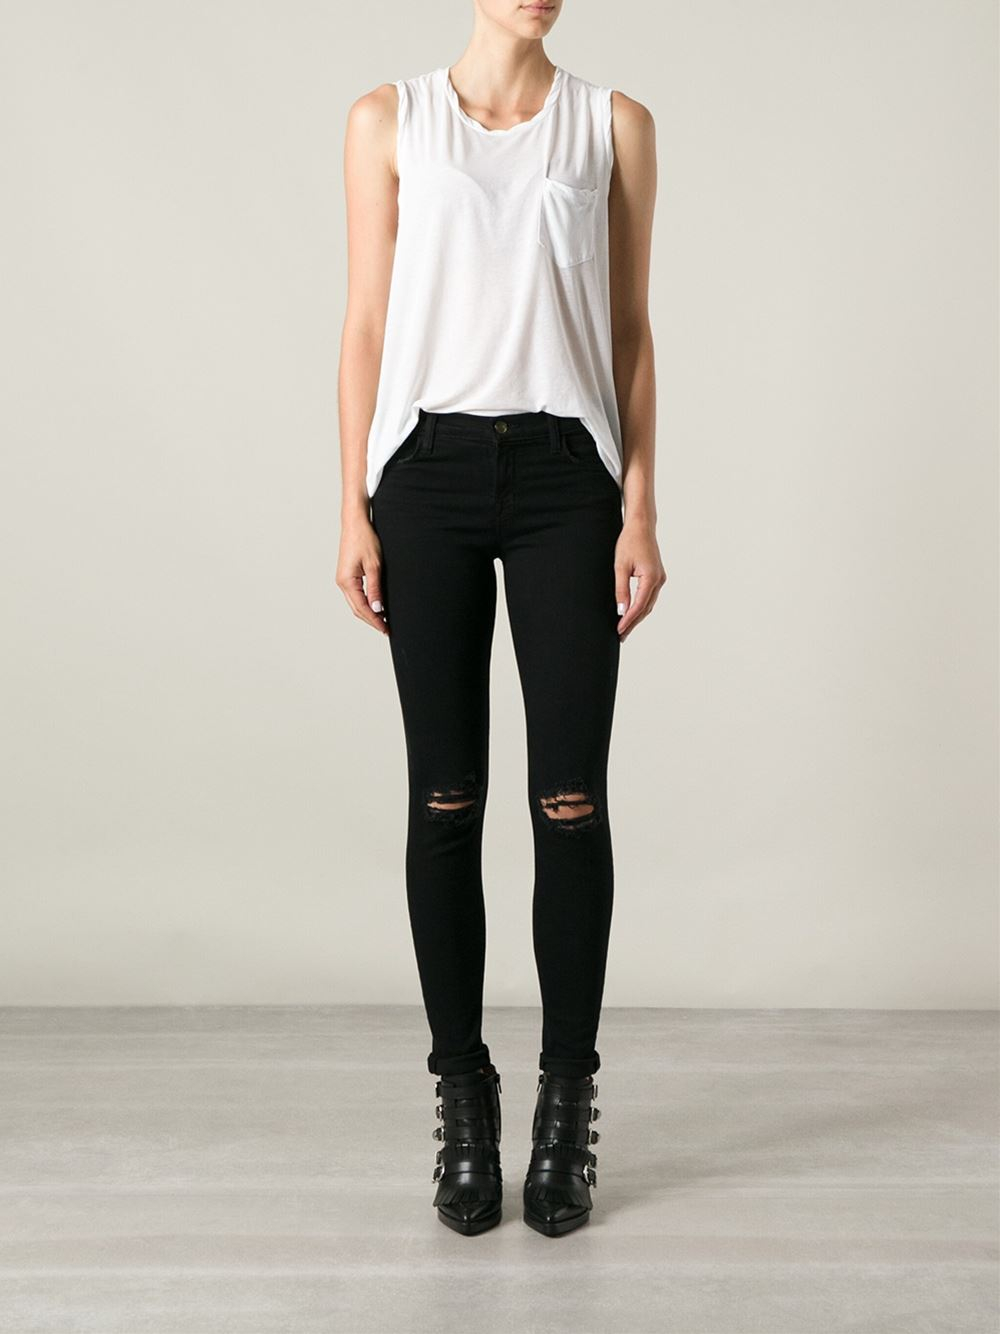 ripped skinny jeans - Black J Brand Shopping Online Cheap Price 2018 Newest Sale Online VnUf2f